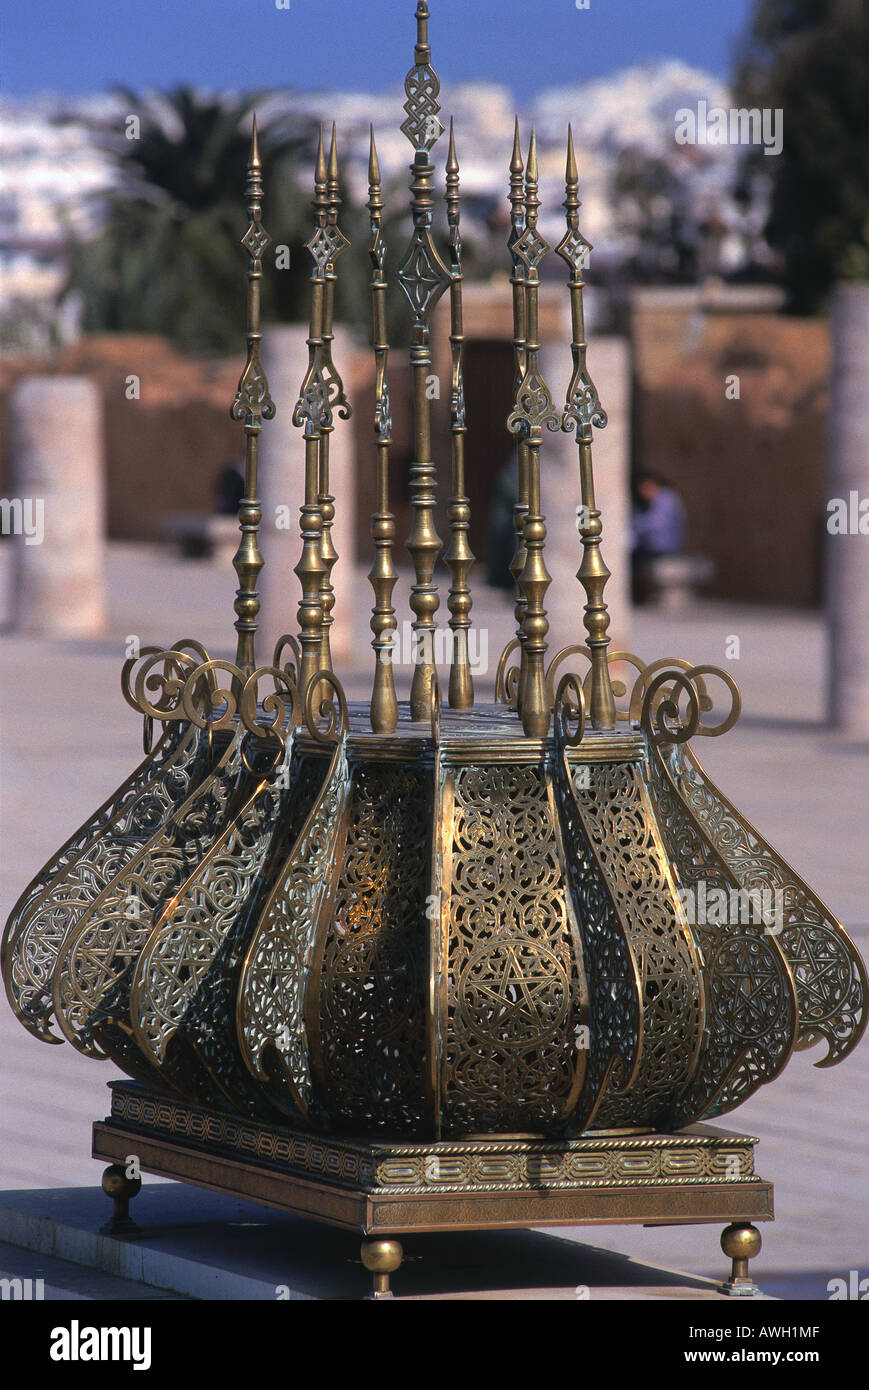 Morocco, Rabat, Mausoleum of Mohammed V, large candelabra with slender vertical shafts made of pierced and engraved copper - Stock Image